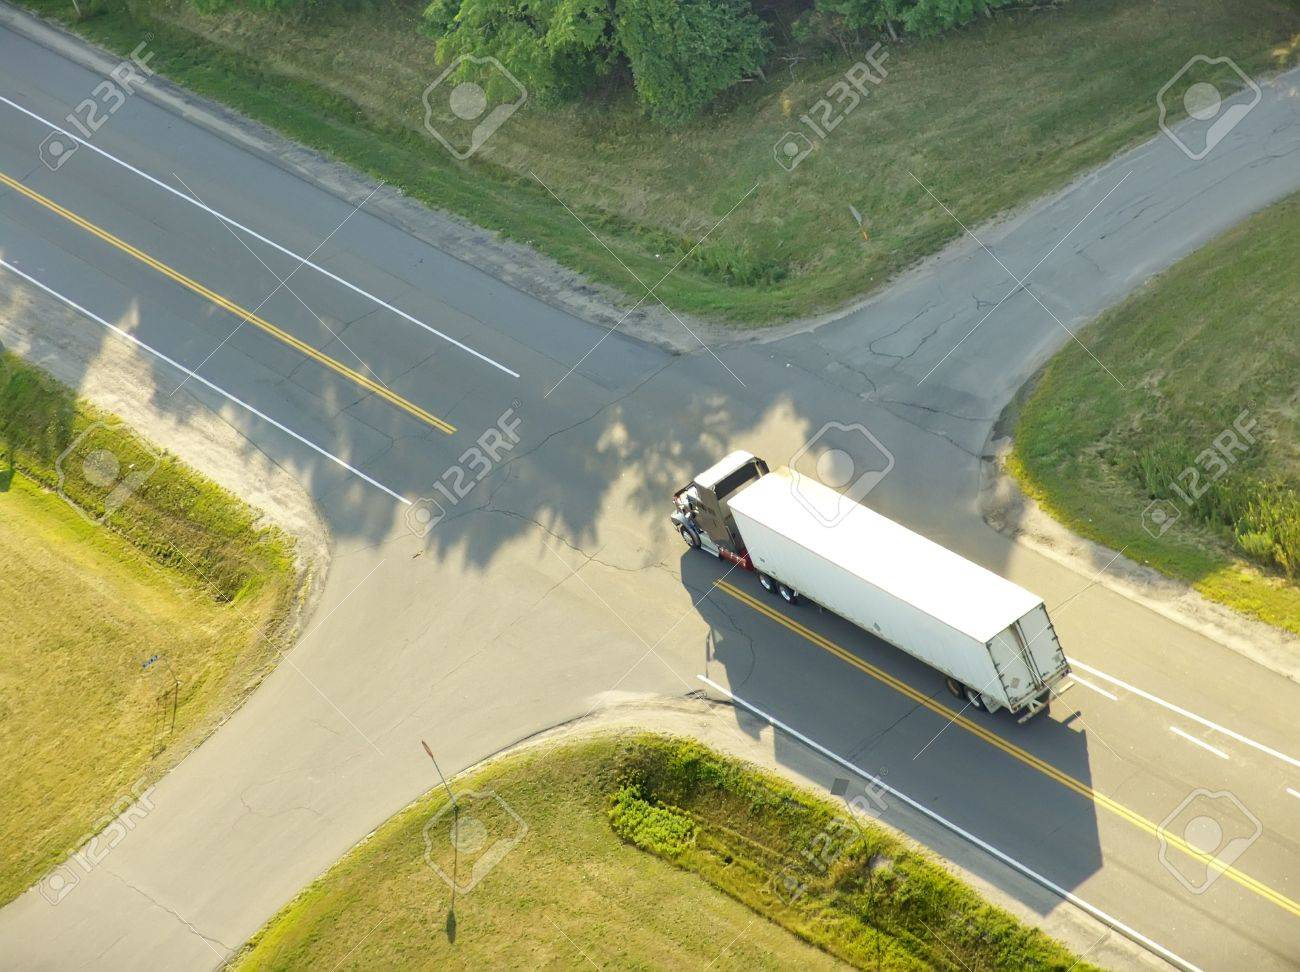 Aerial view of a truck approaching a roads intersection. - 2899182